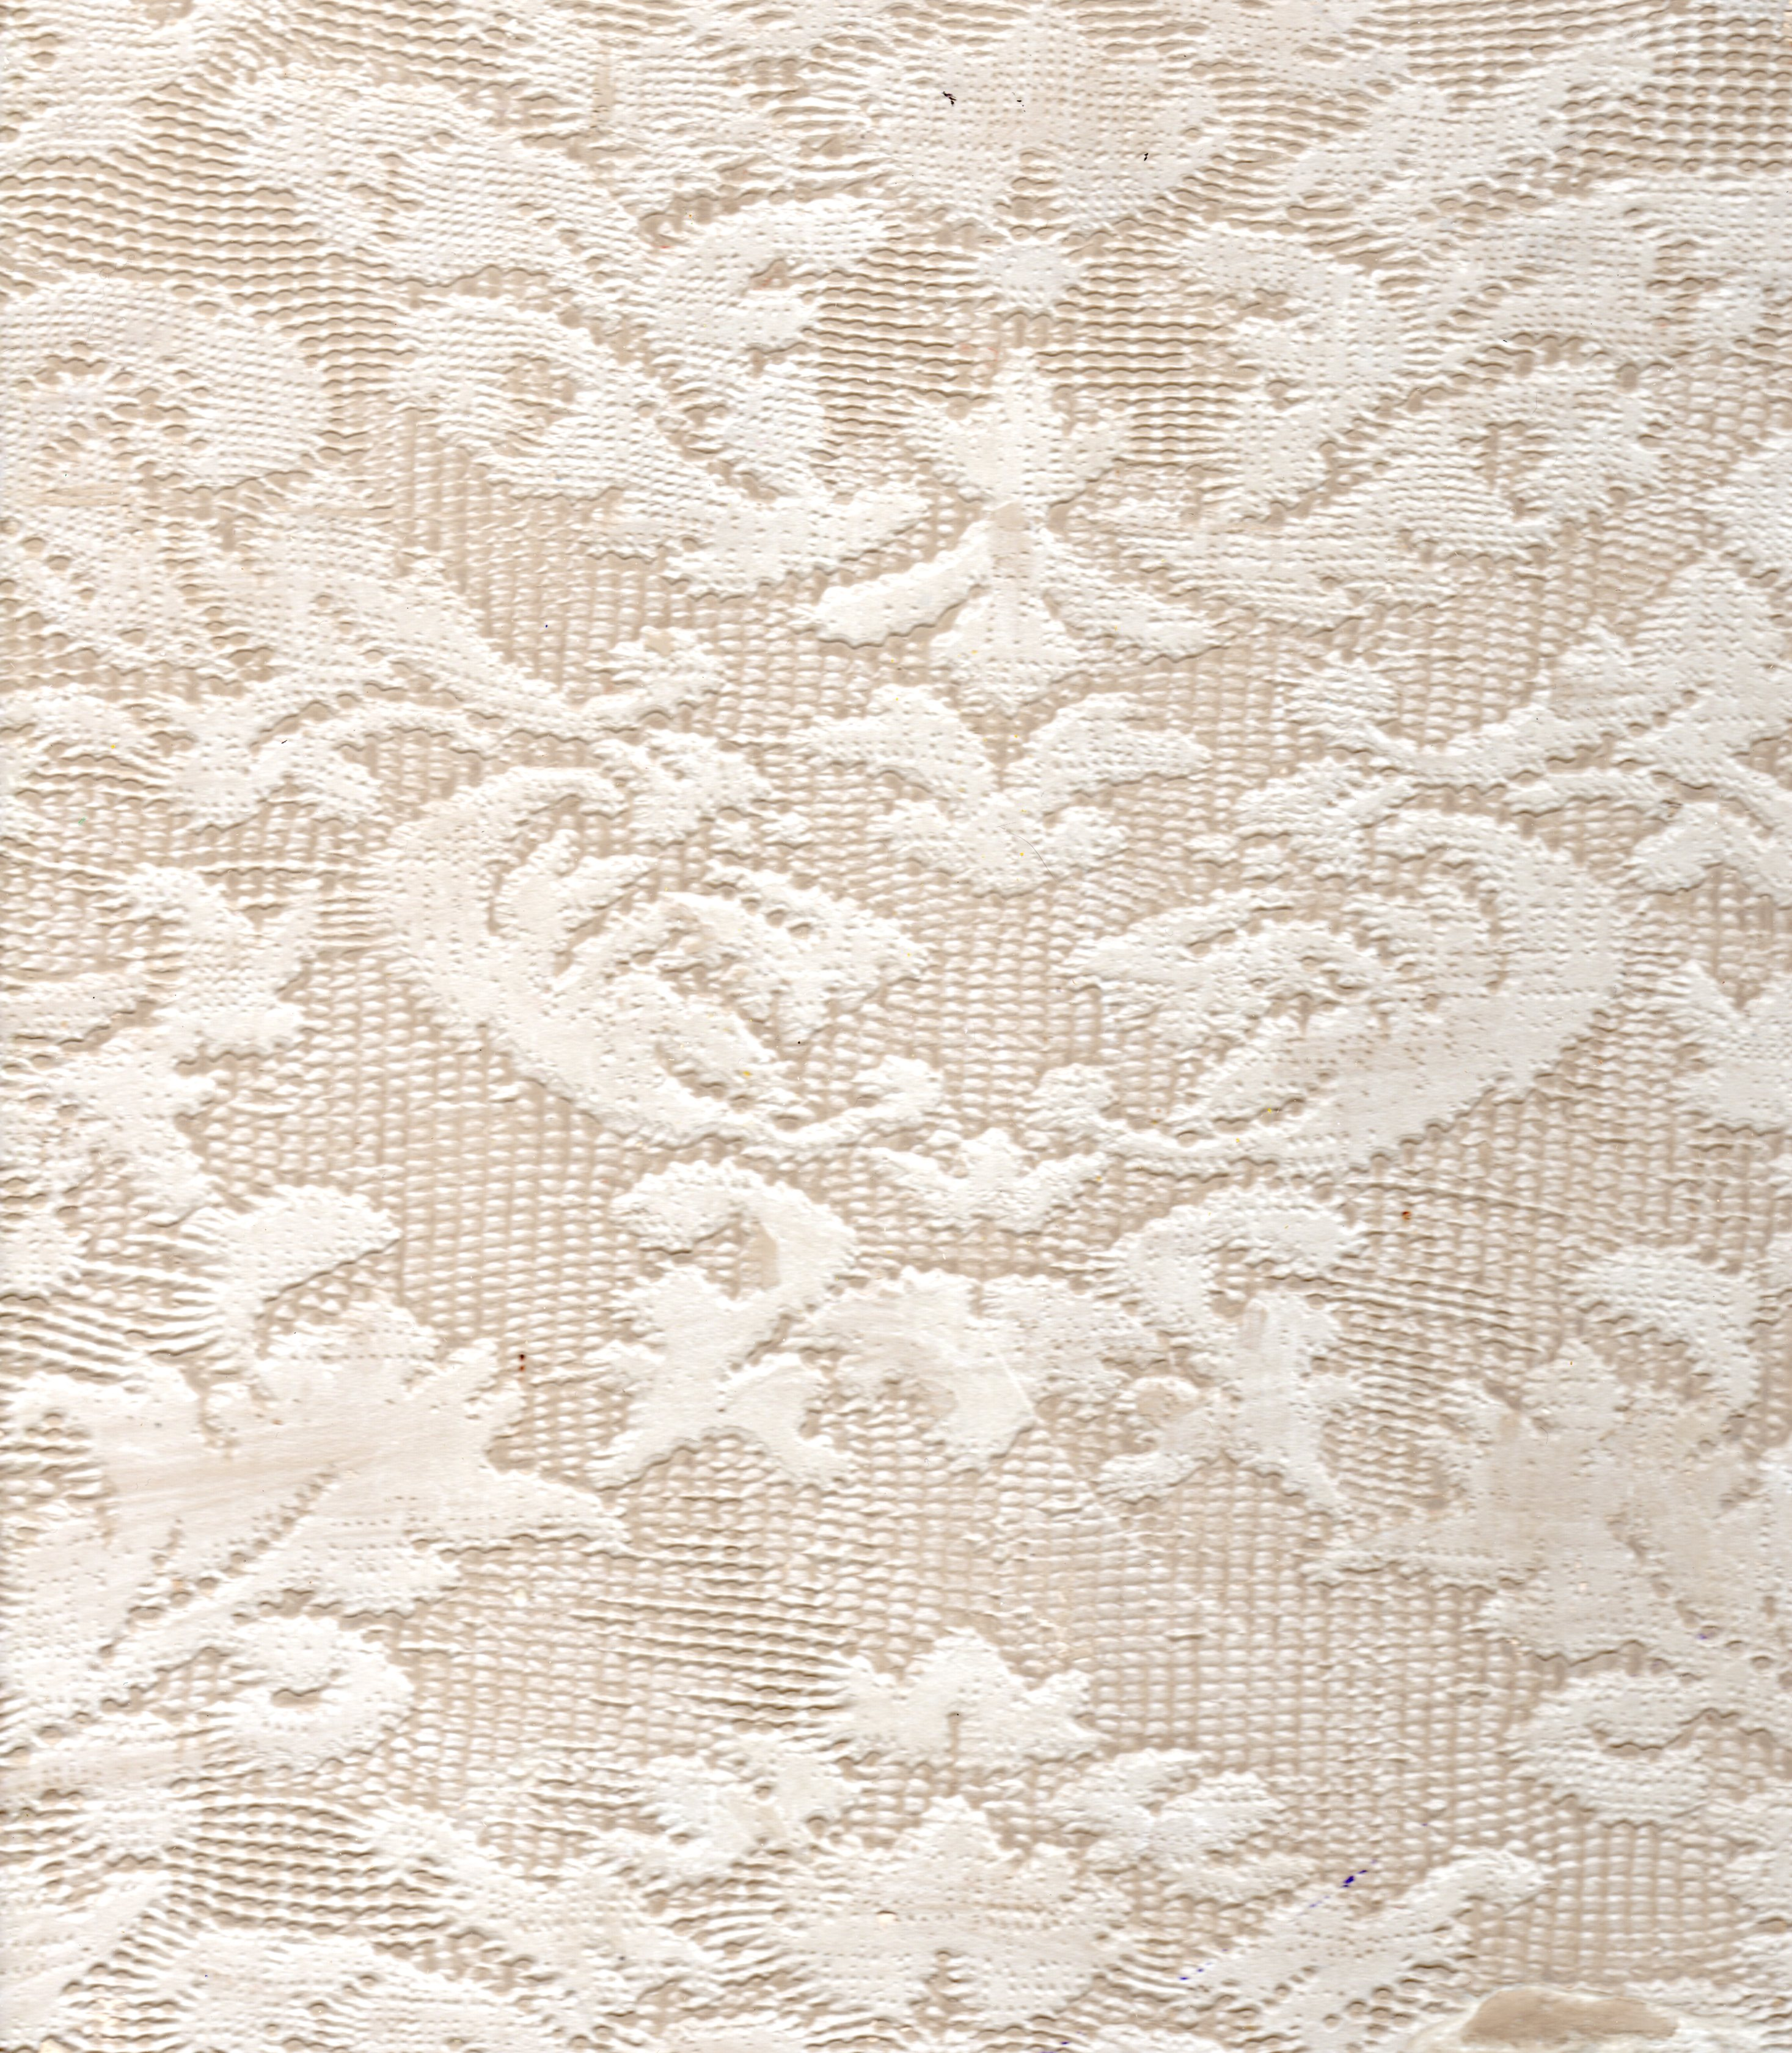 Murals By Marg Decorative Plaster Lace 4.jpg